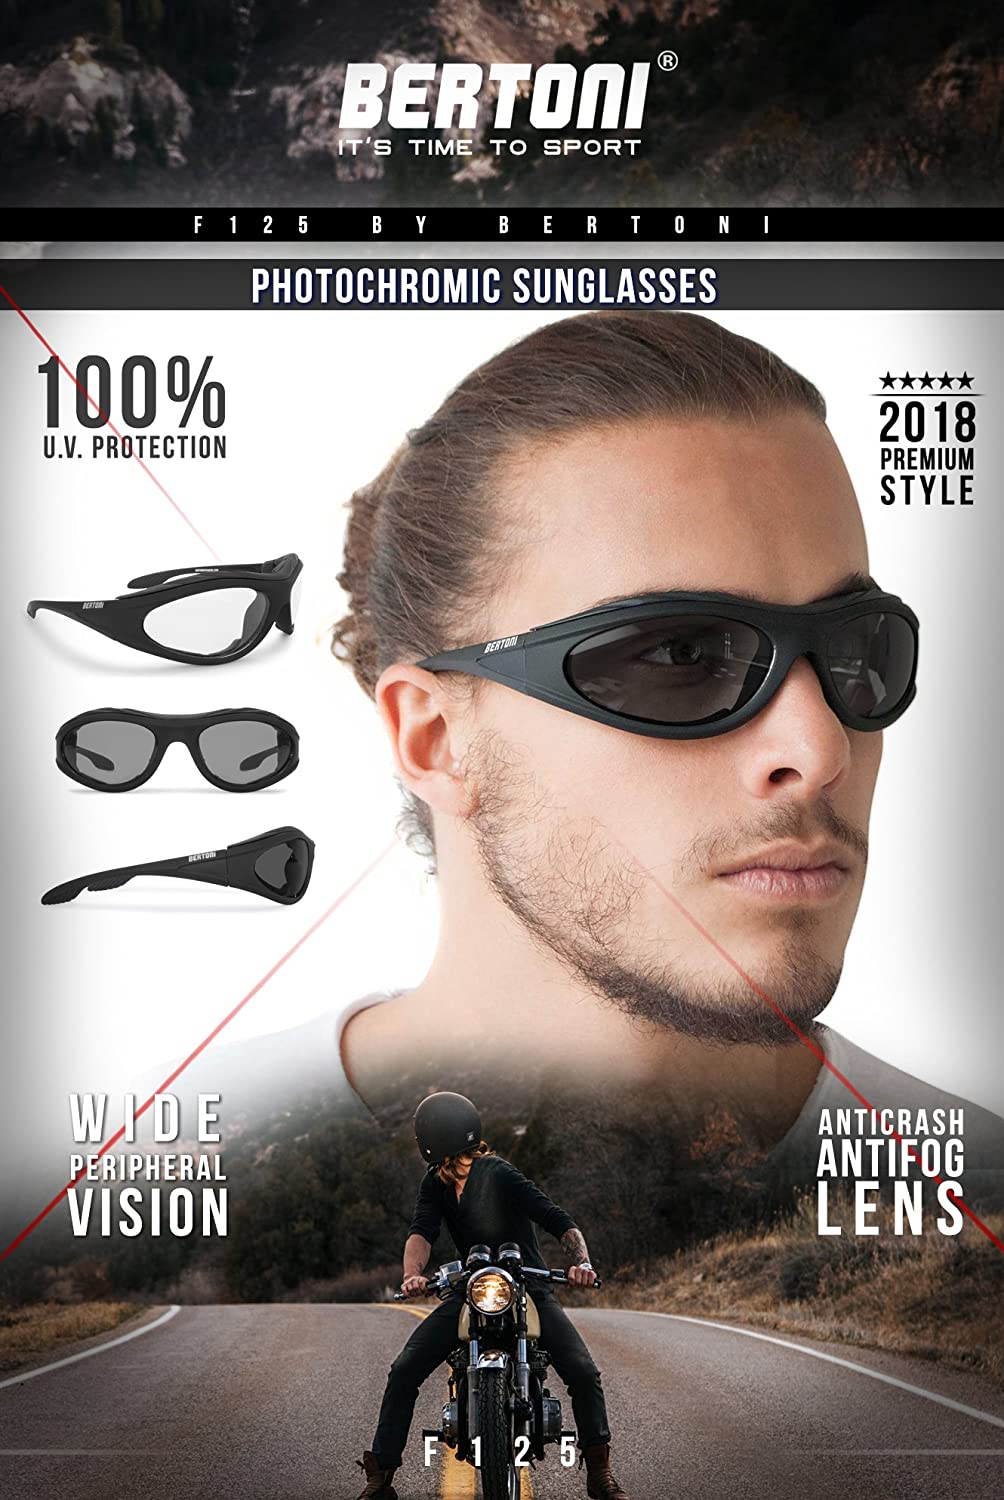 2a856978a5f1 Amazon.com: Motorcycle Padded Glasses Photochromic Antifog Anticrash Lens -  Windproof insert - by Bertoni Italy F125A1 Motorbike Riding Sunglasses: ...